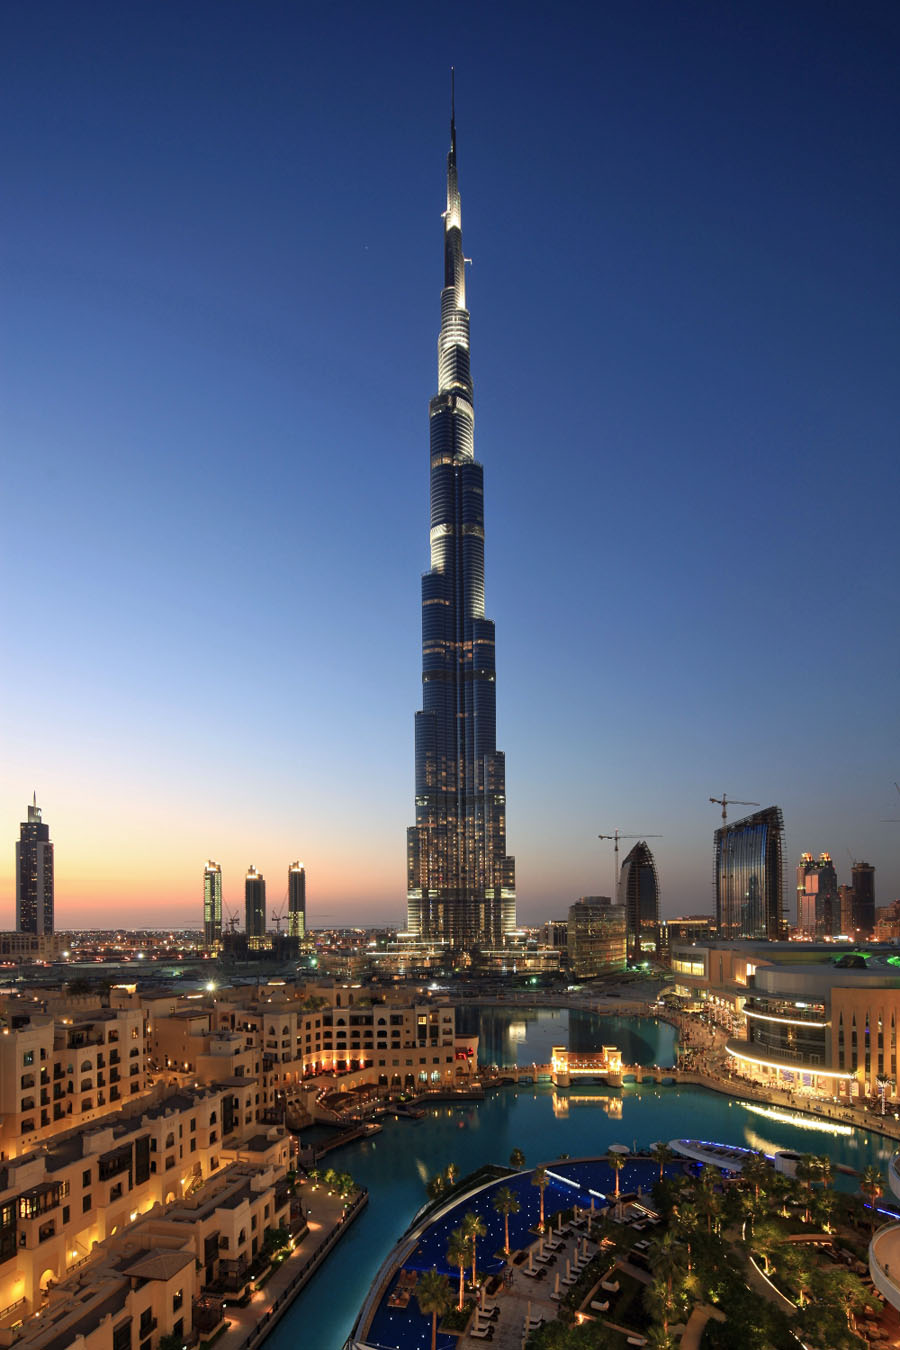 Burj khalifa dubai tallest building in the world 16 for Dubai hotels near burj khalifa